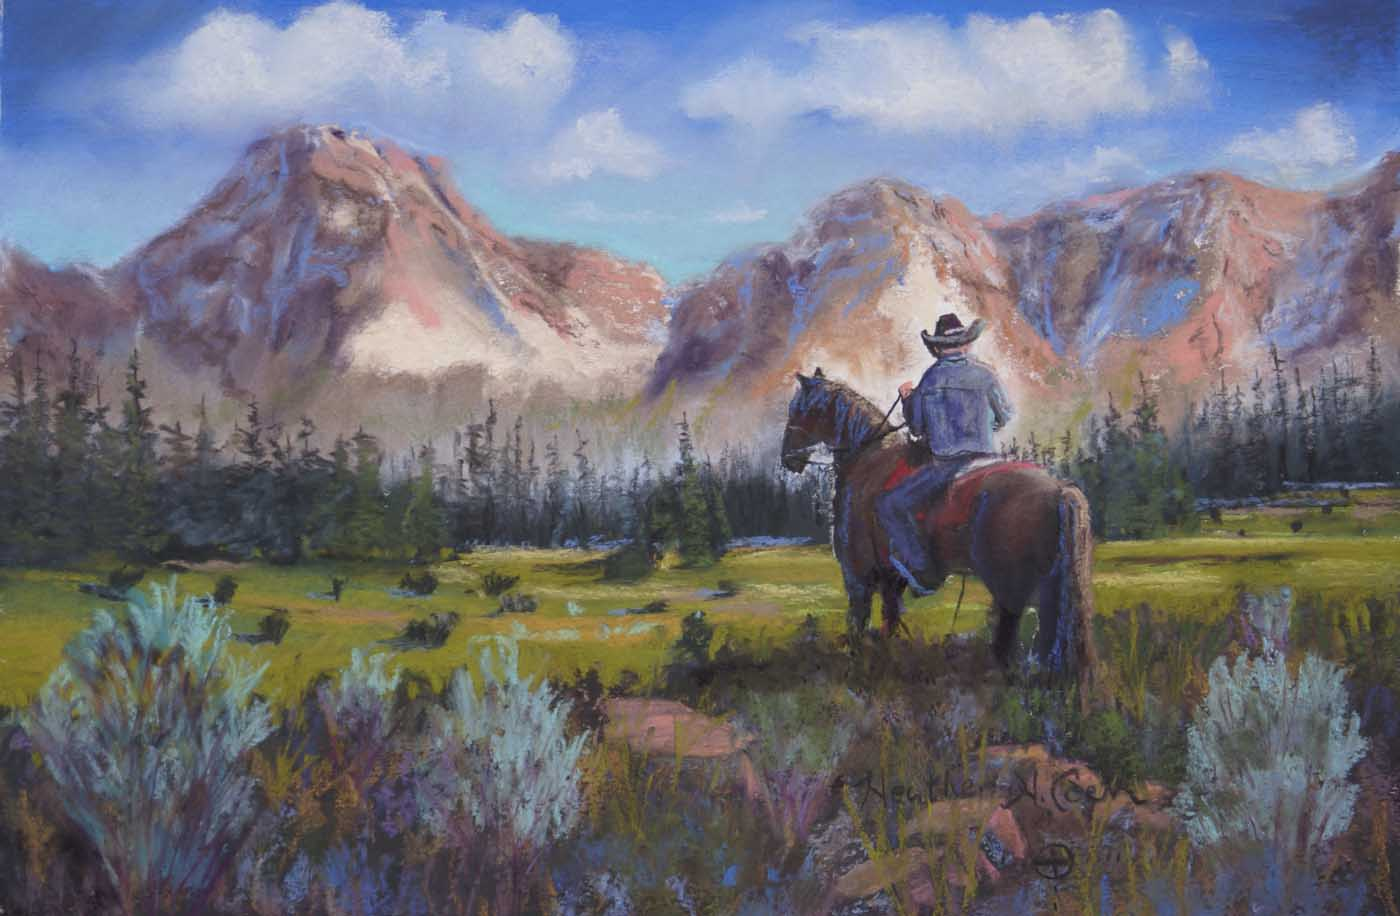 Pastel Society of the West Coast and West Coast Artists